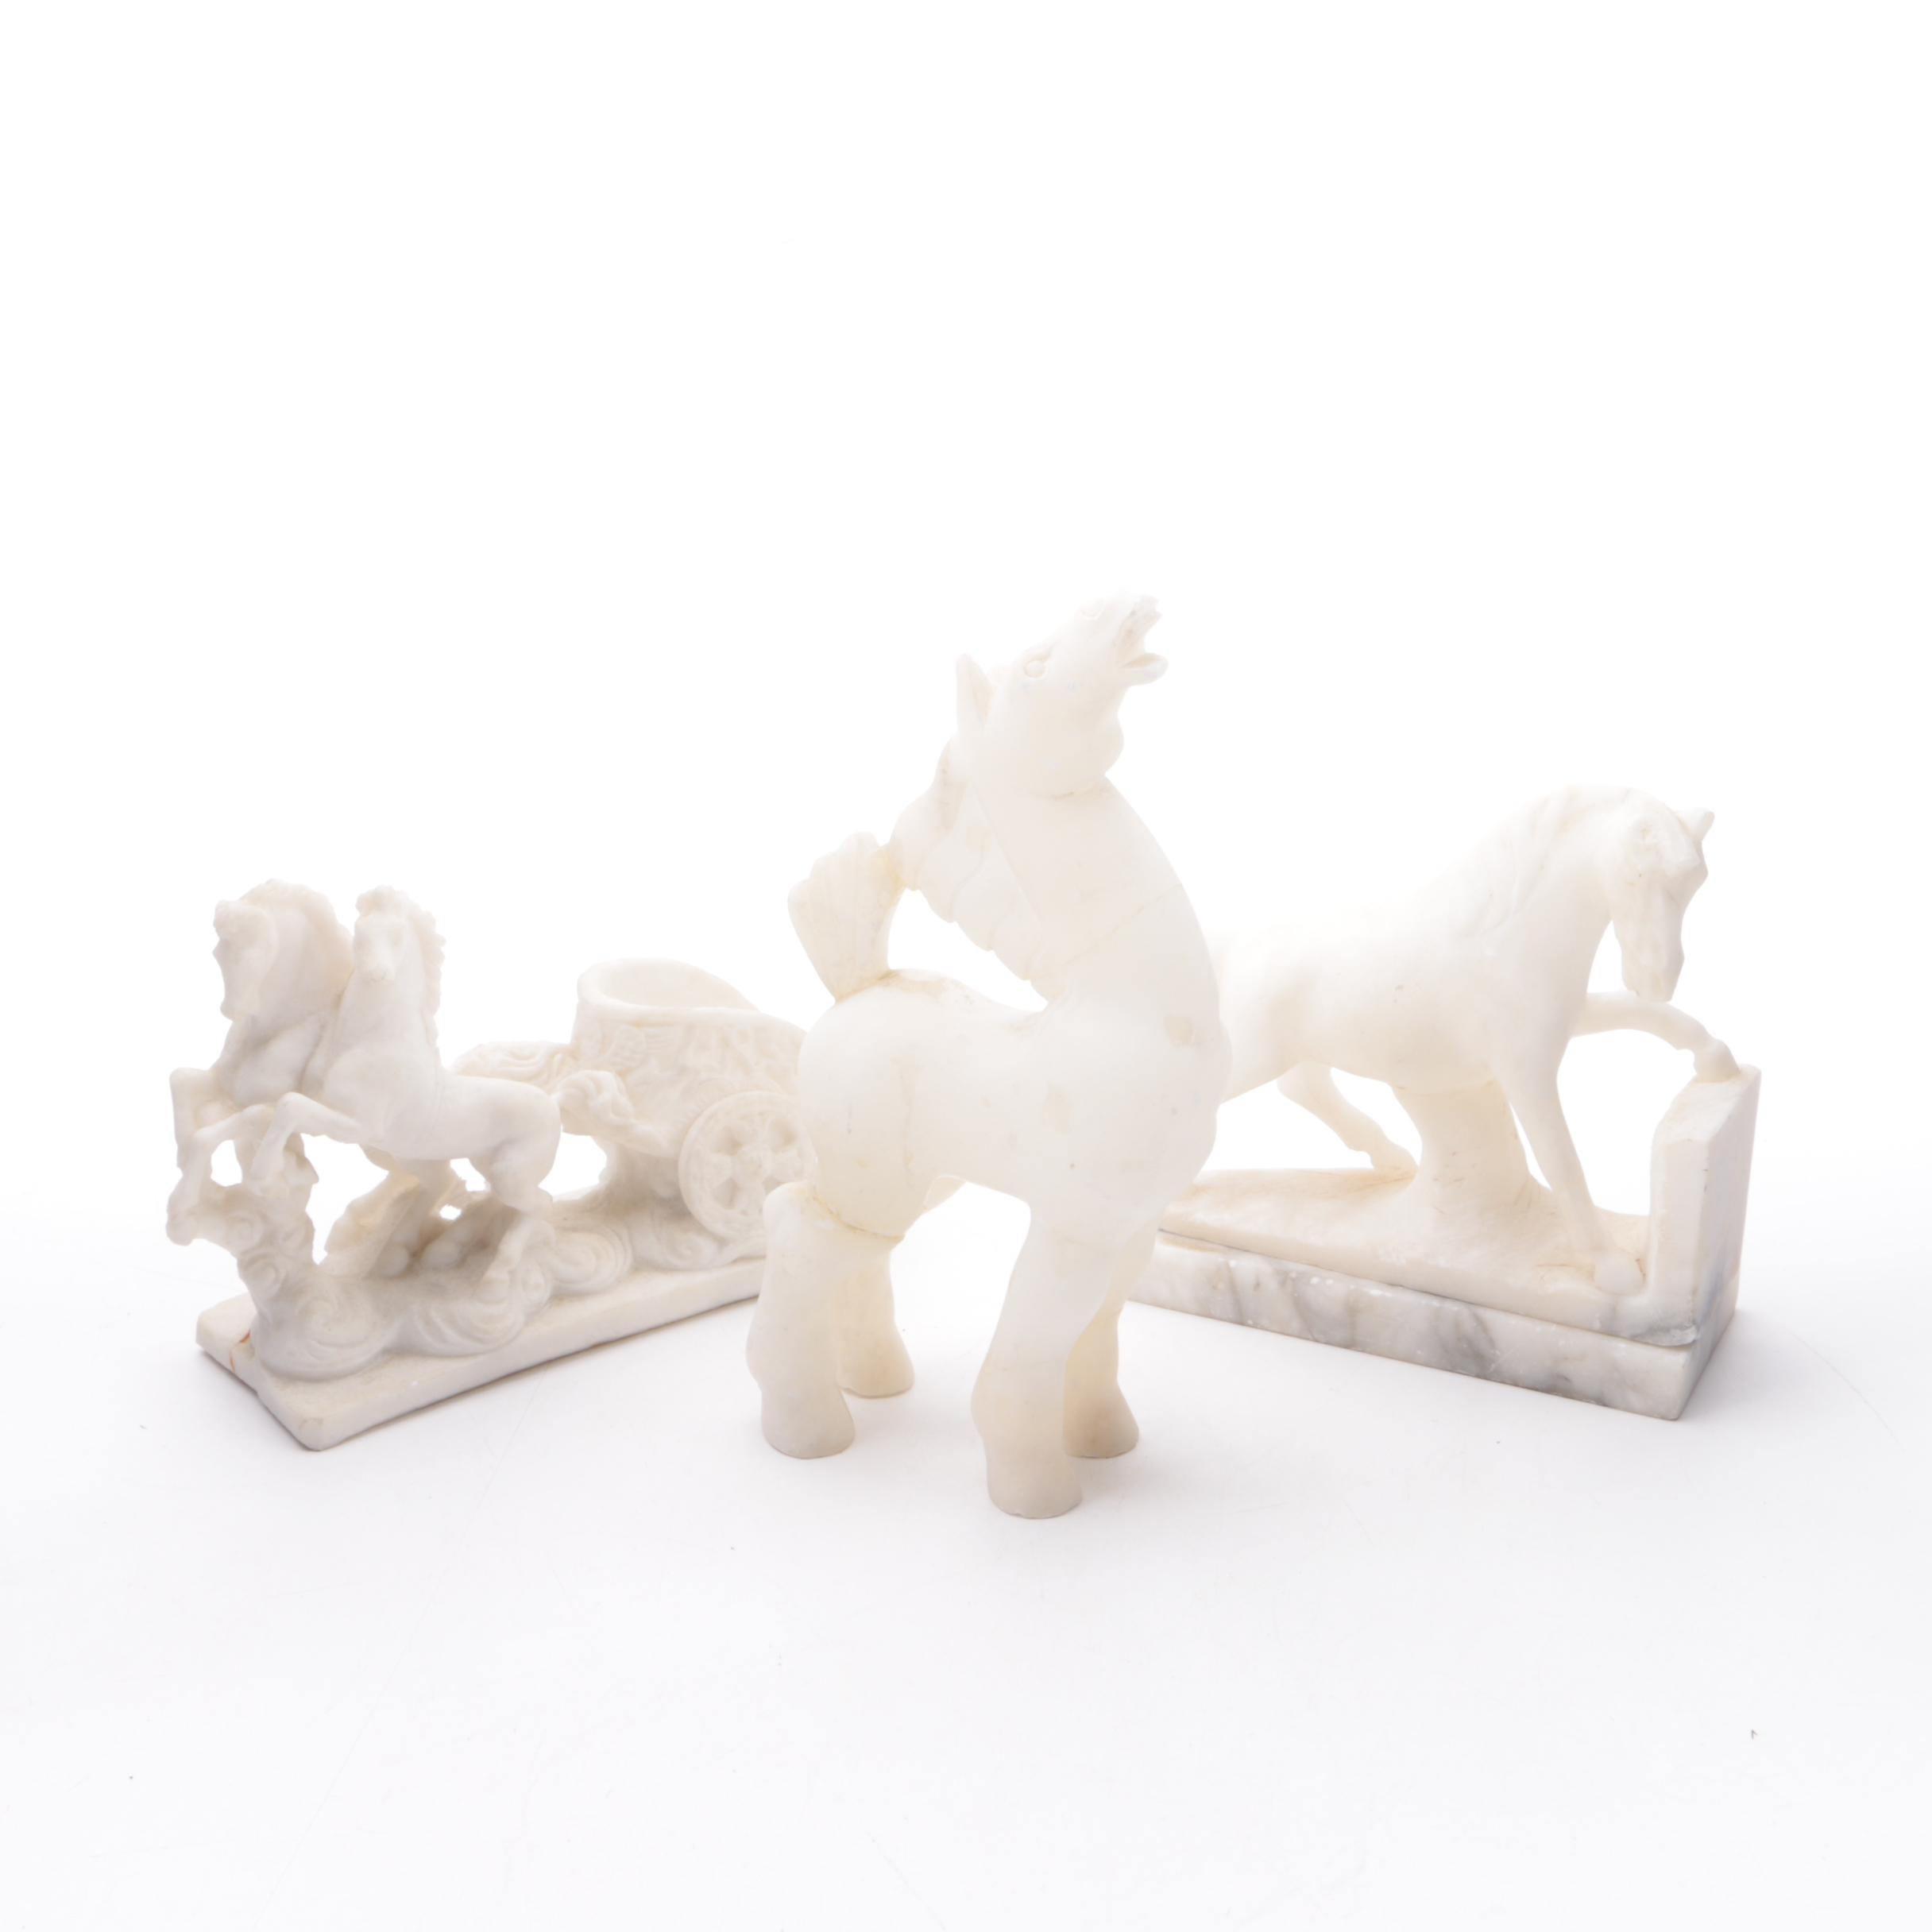 White Resin and Alabaster Horse Figurines